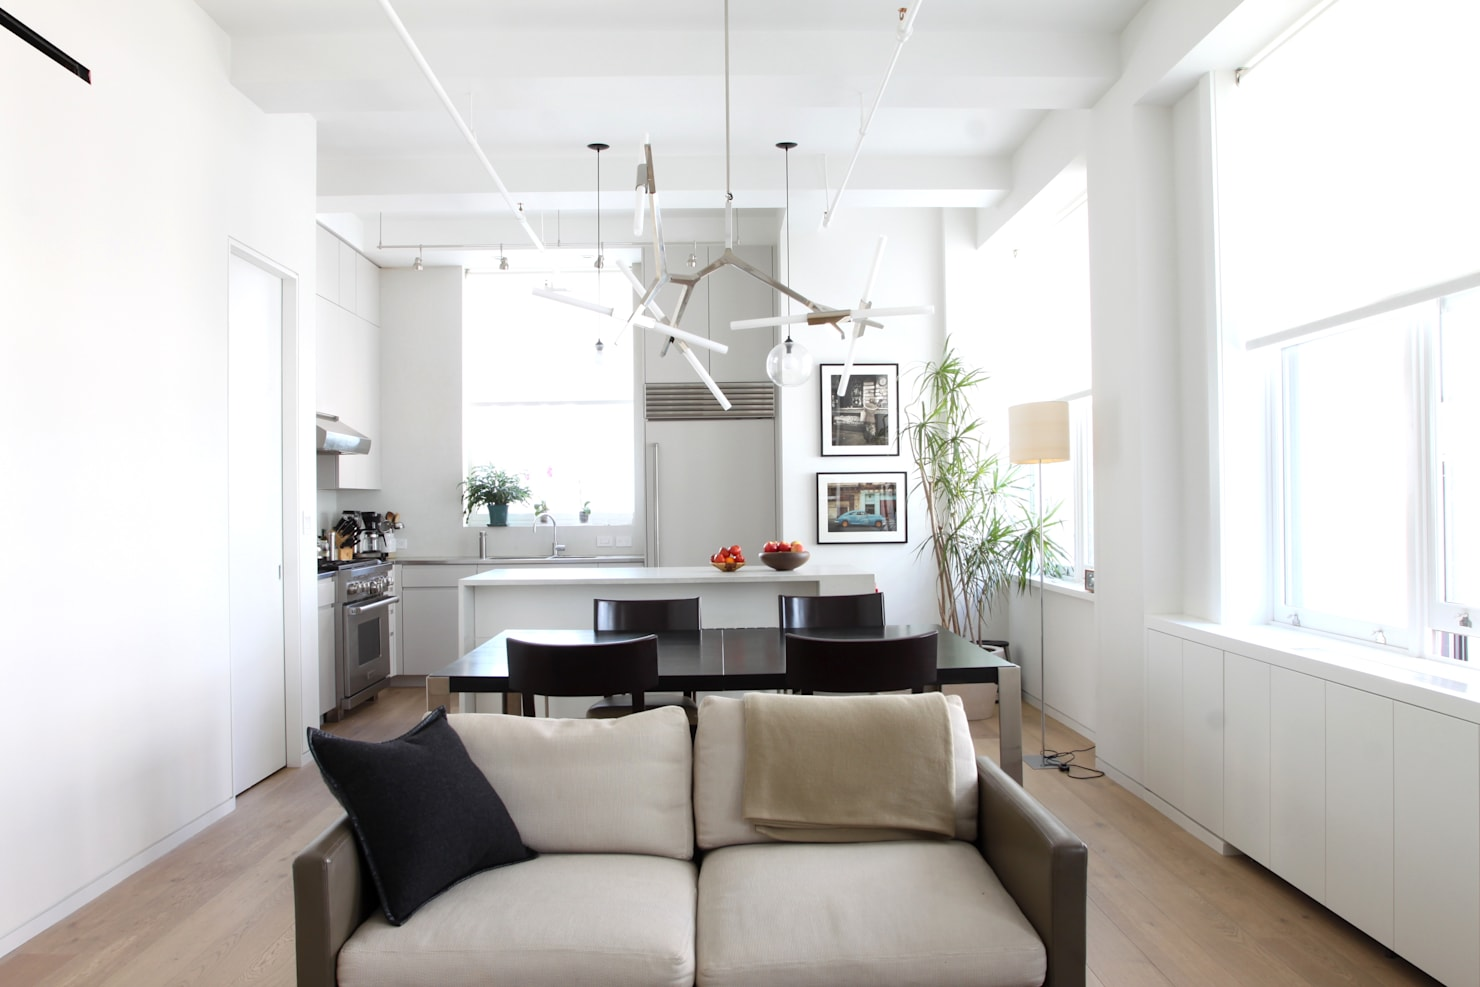 How to divide an open-plan space: 9 ideas